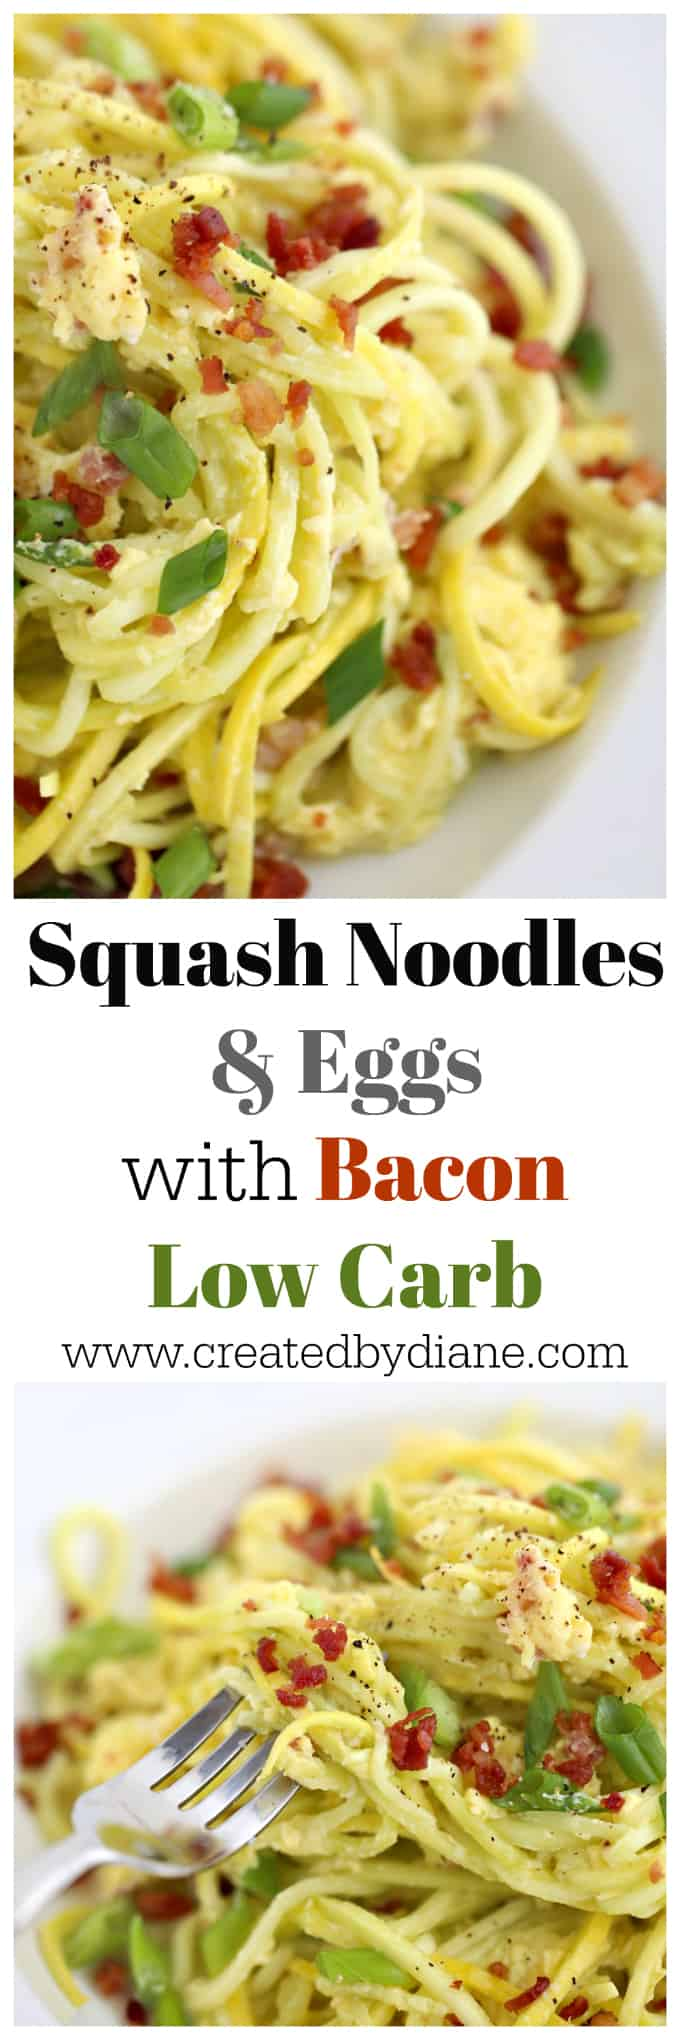 squash noodles and eggs with bacon www.createdbydiane.com